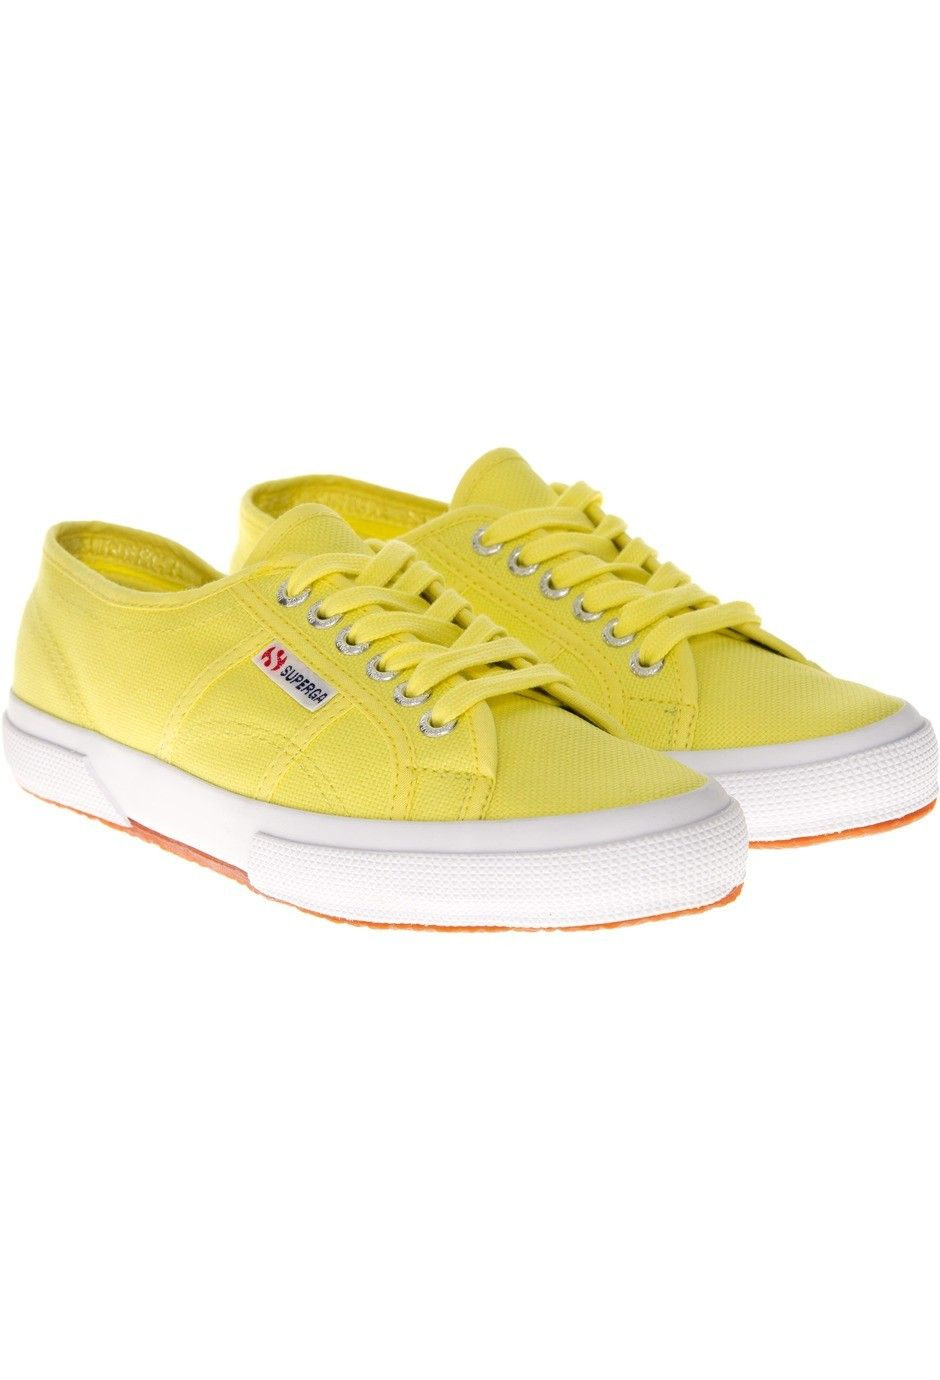 My Pinterest Shoes Walking Classic Zapatillas Amarillo In qnwRZIz8xU